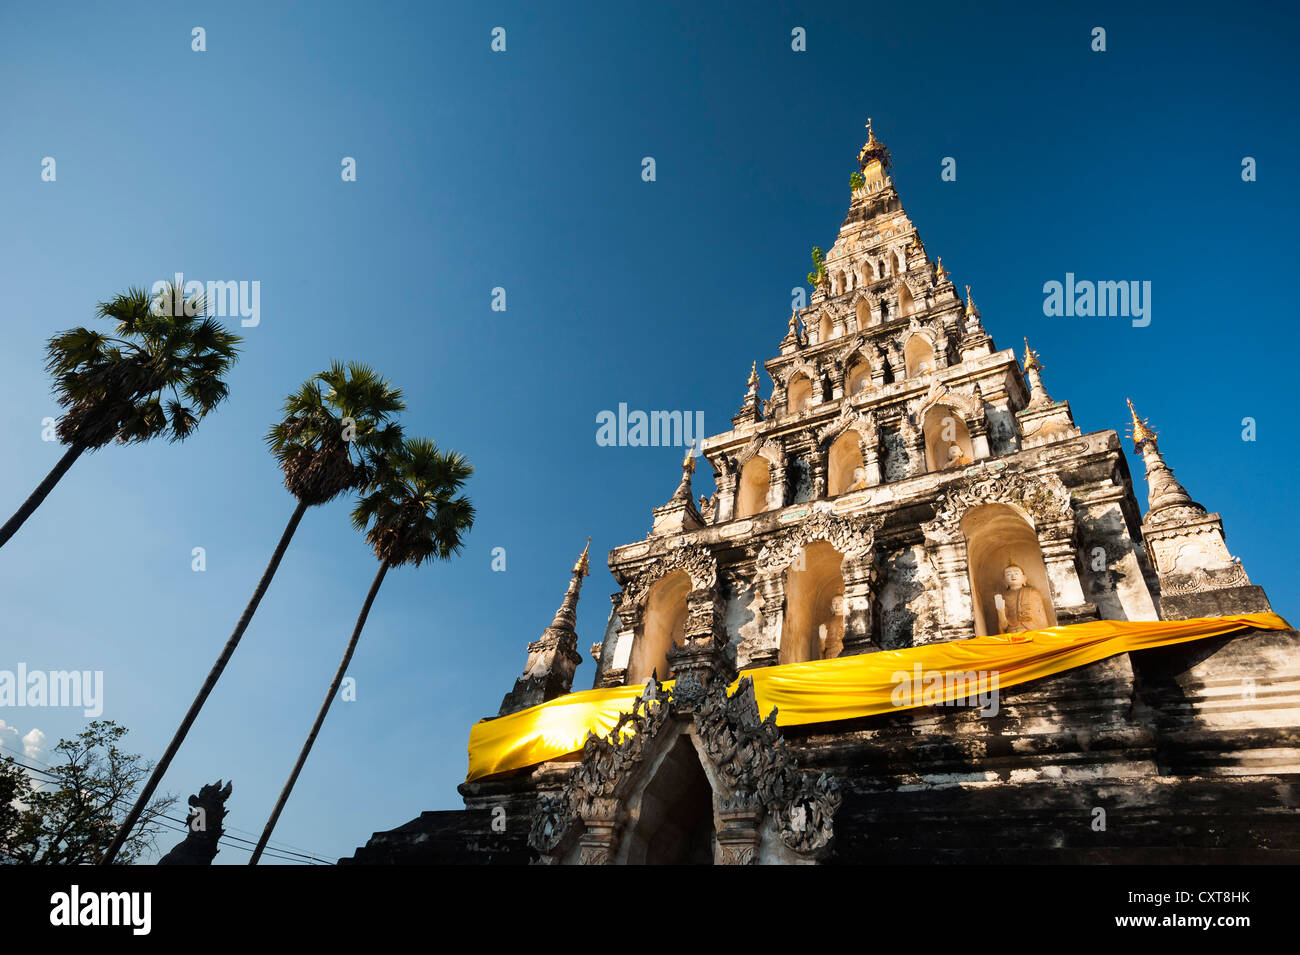 Unusual square pagoda or chedi, Wat Chedi Liam and market, restored Wiang Kum Kam settlement, Chiang Mai, Northern - Stock Image